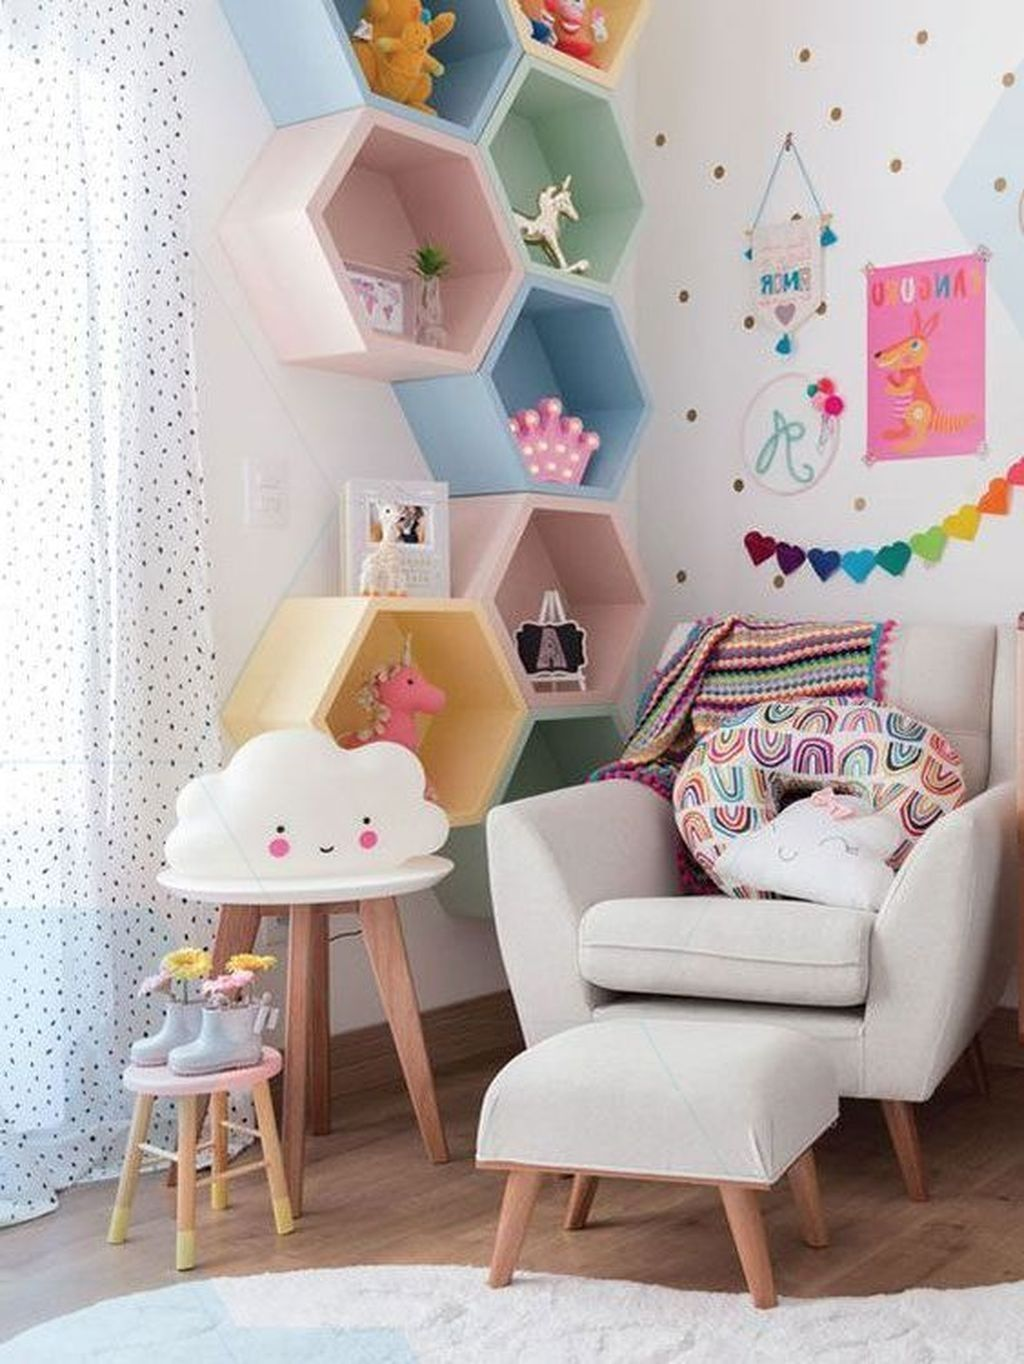 30 Awesome Child S Room Ideas With Wall Decoration Kids Room Wall Decor Kids Bedroom Decor Kids Bedroom Designs